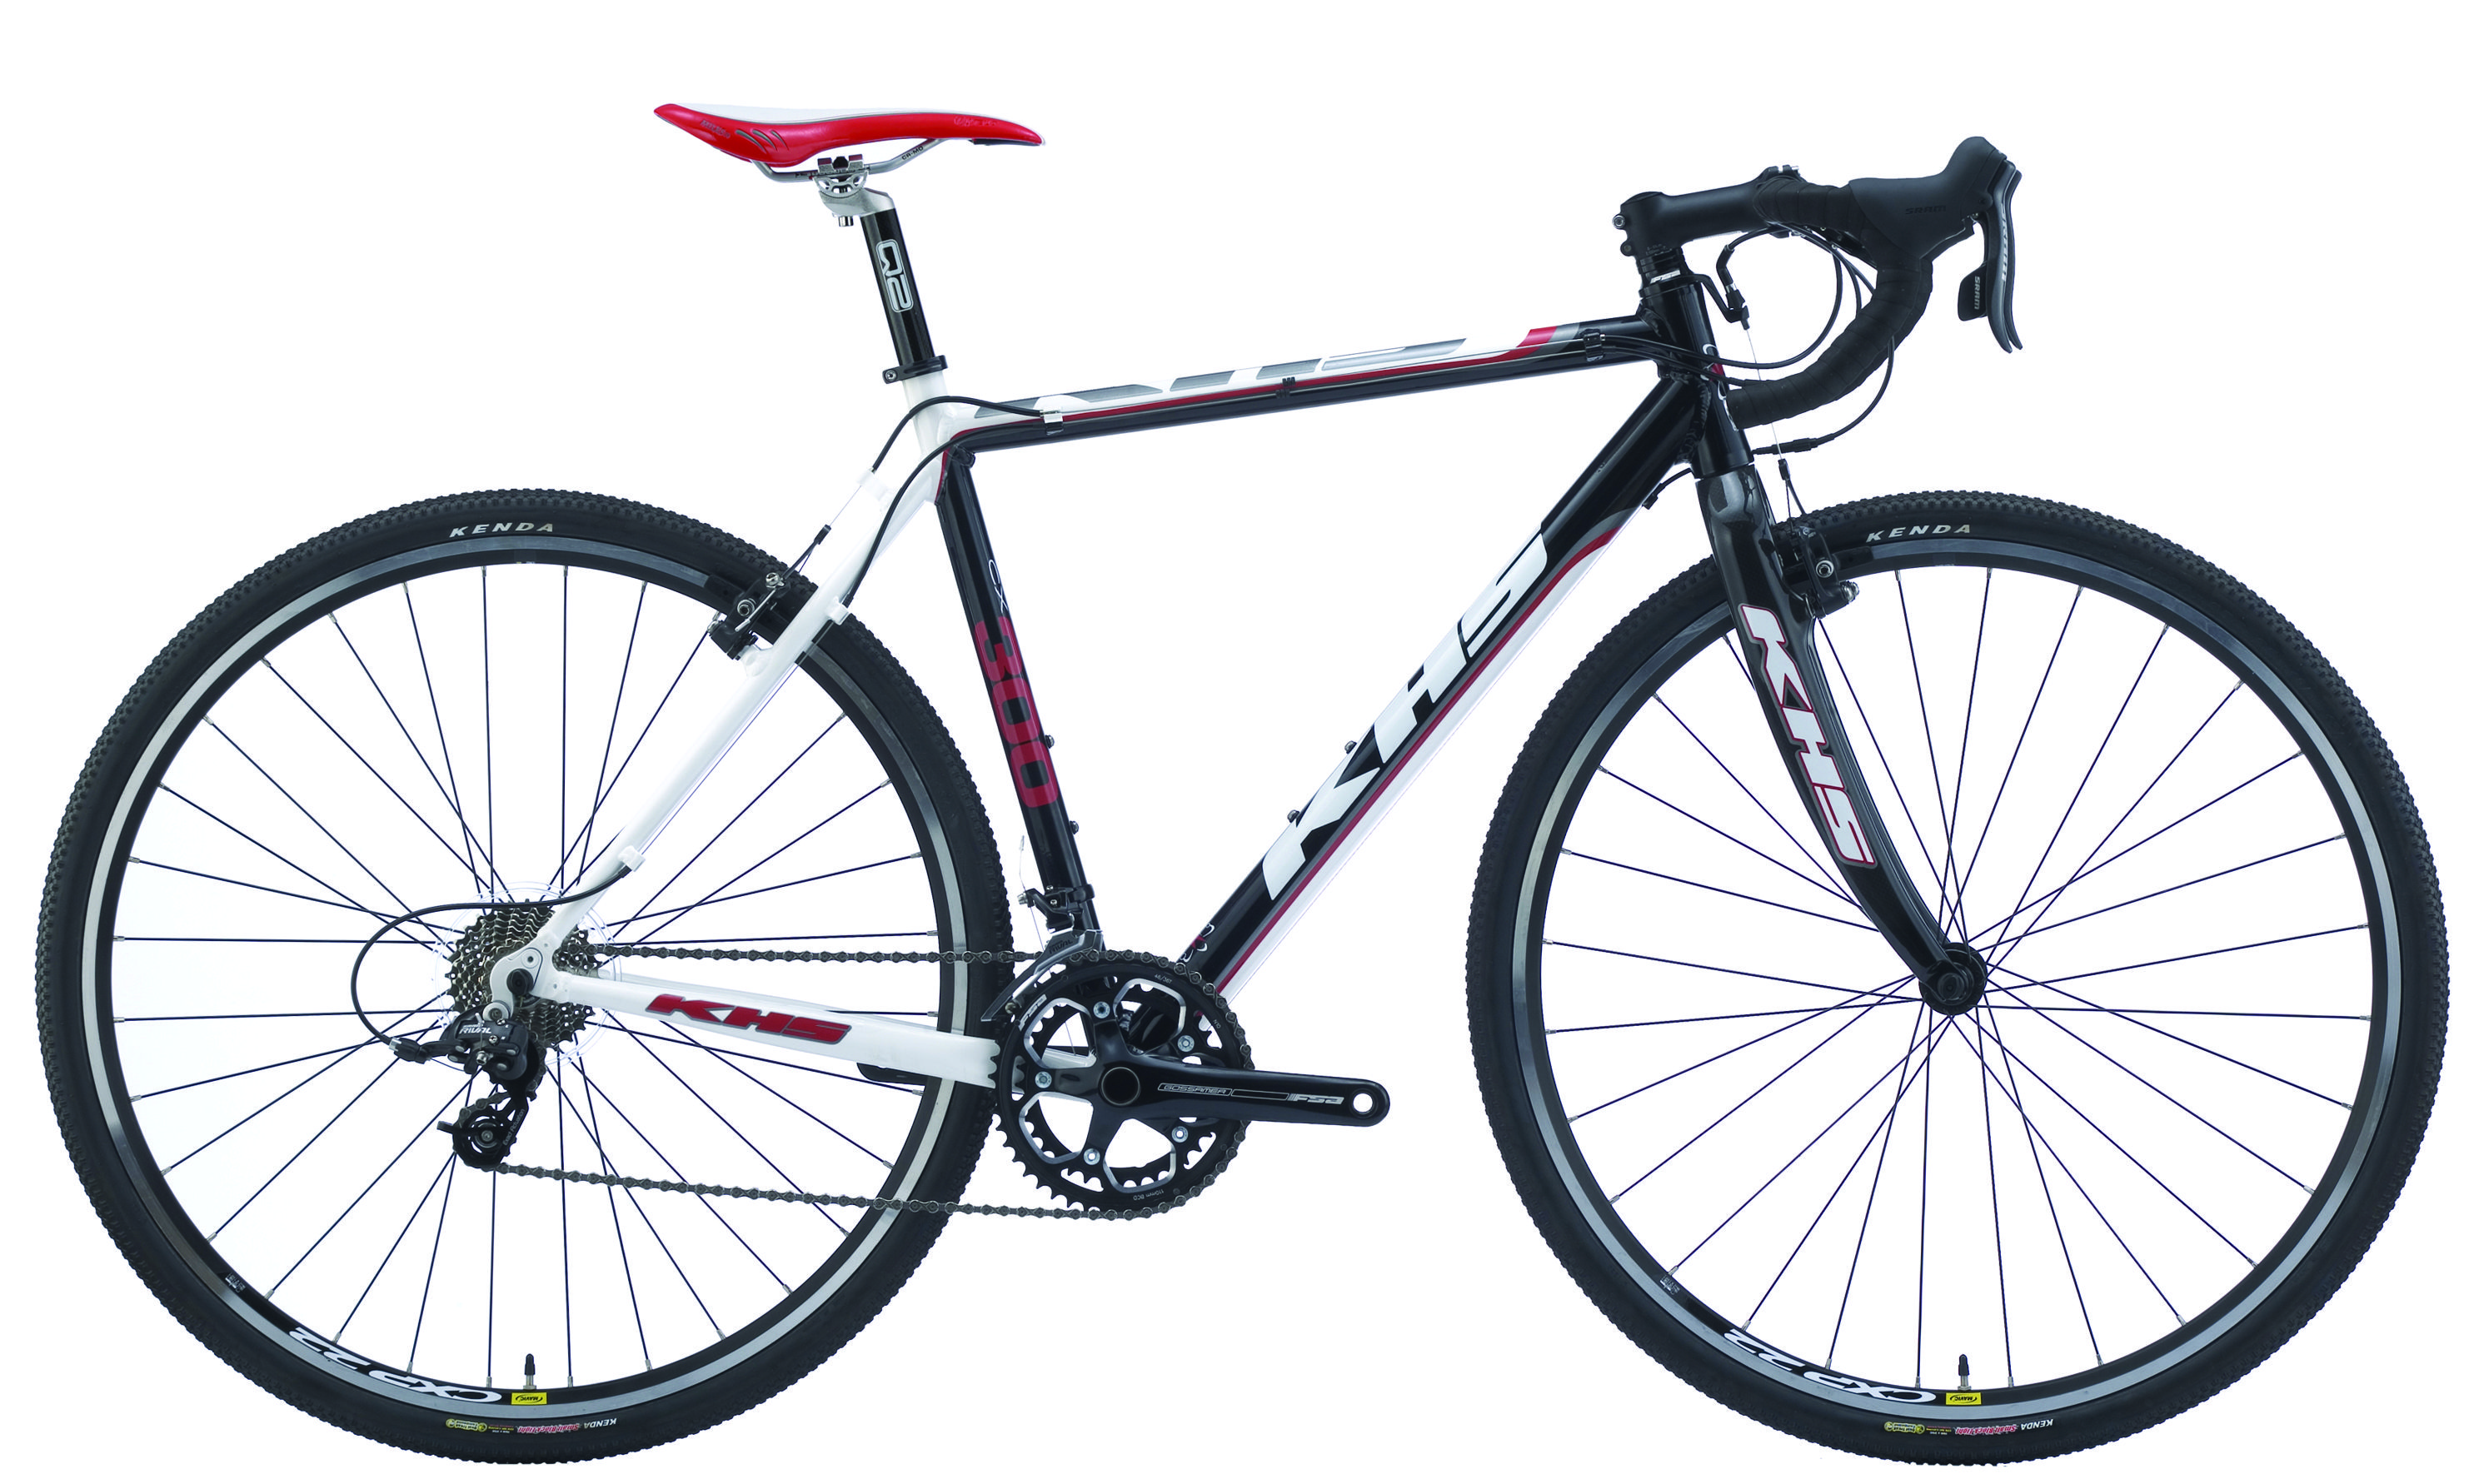 Beautiful Khs Cx 300 Bicycle Bid On This Item And More And Help